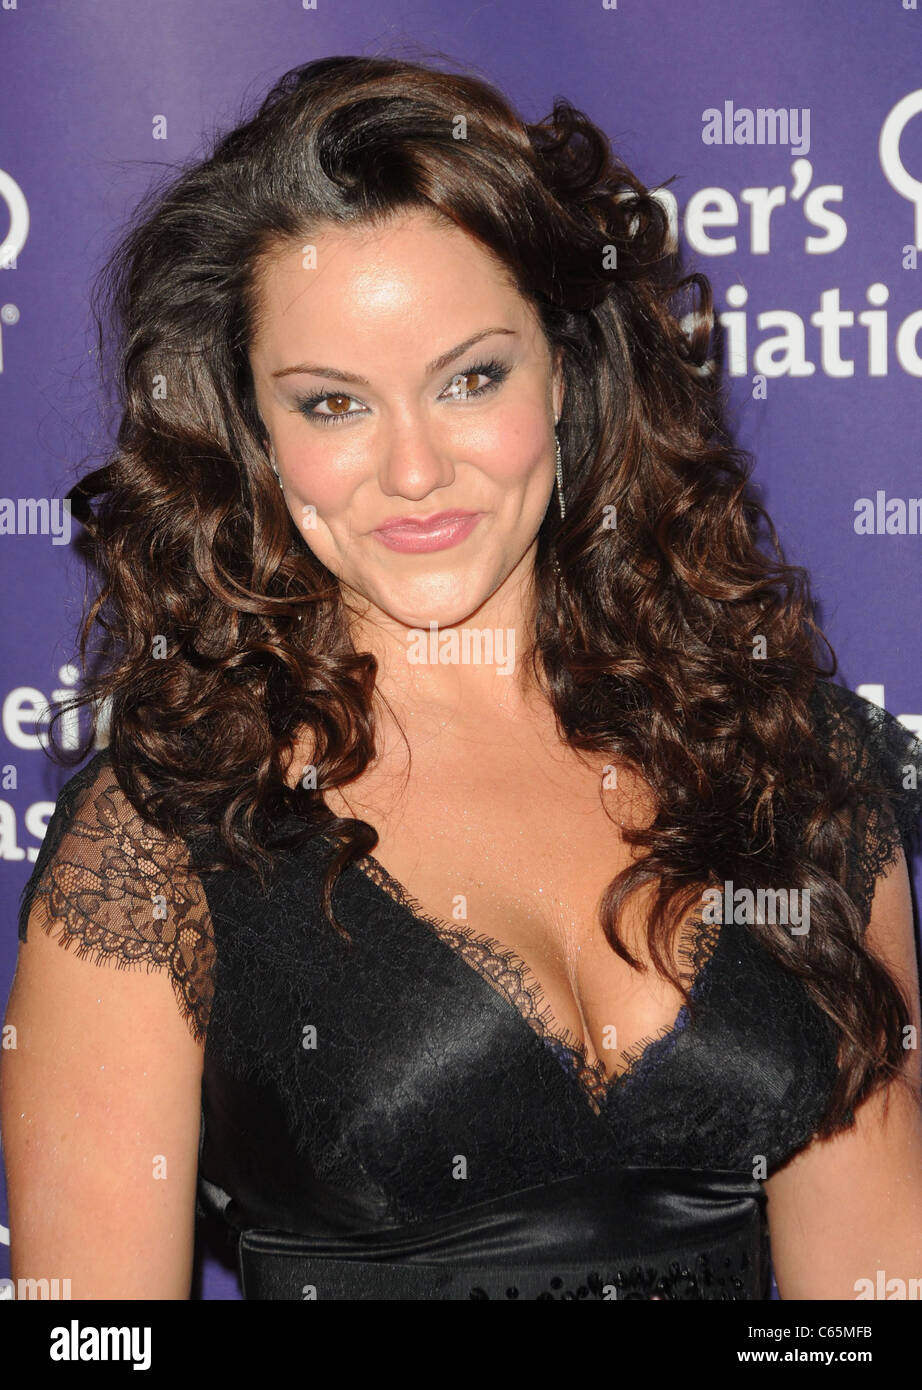 Katy Mixon Stock Photos & Katy Mixon Stock Images - Alamy Katy Mixon